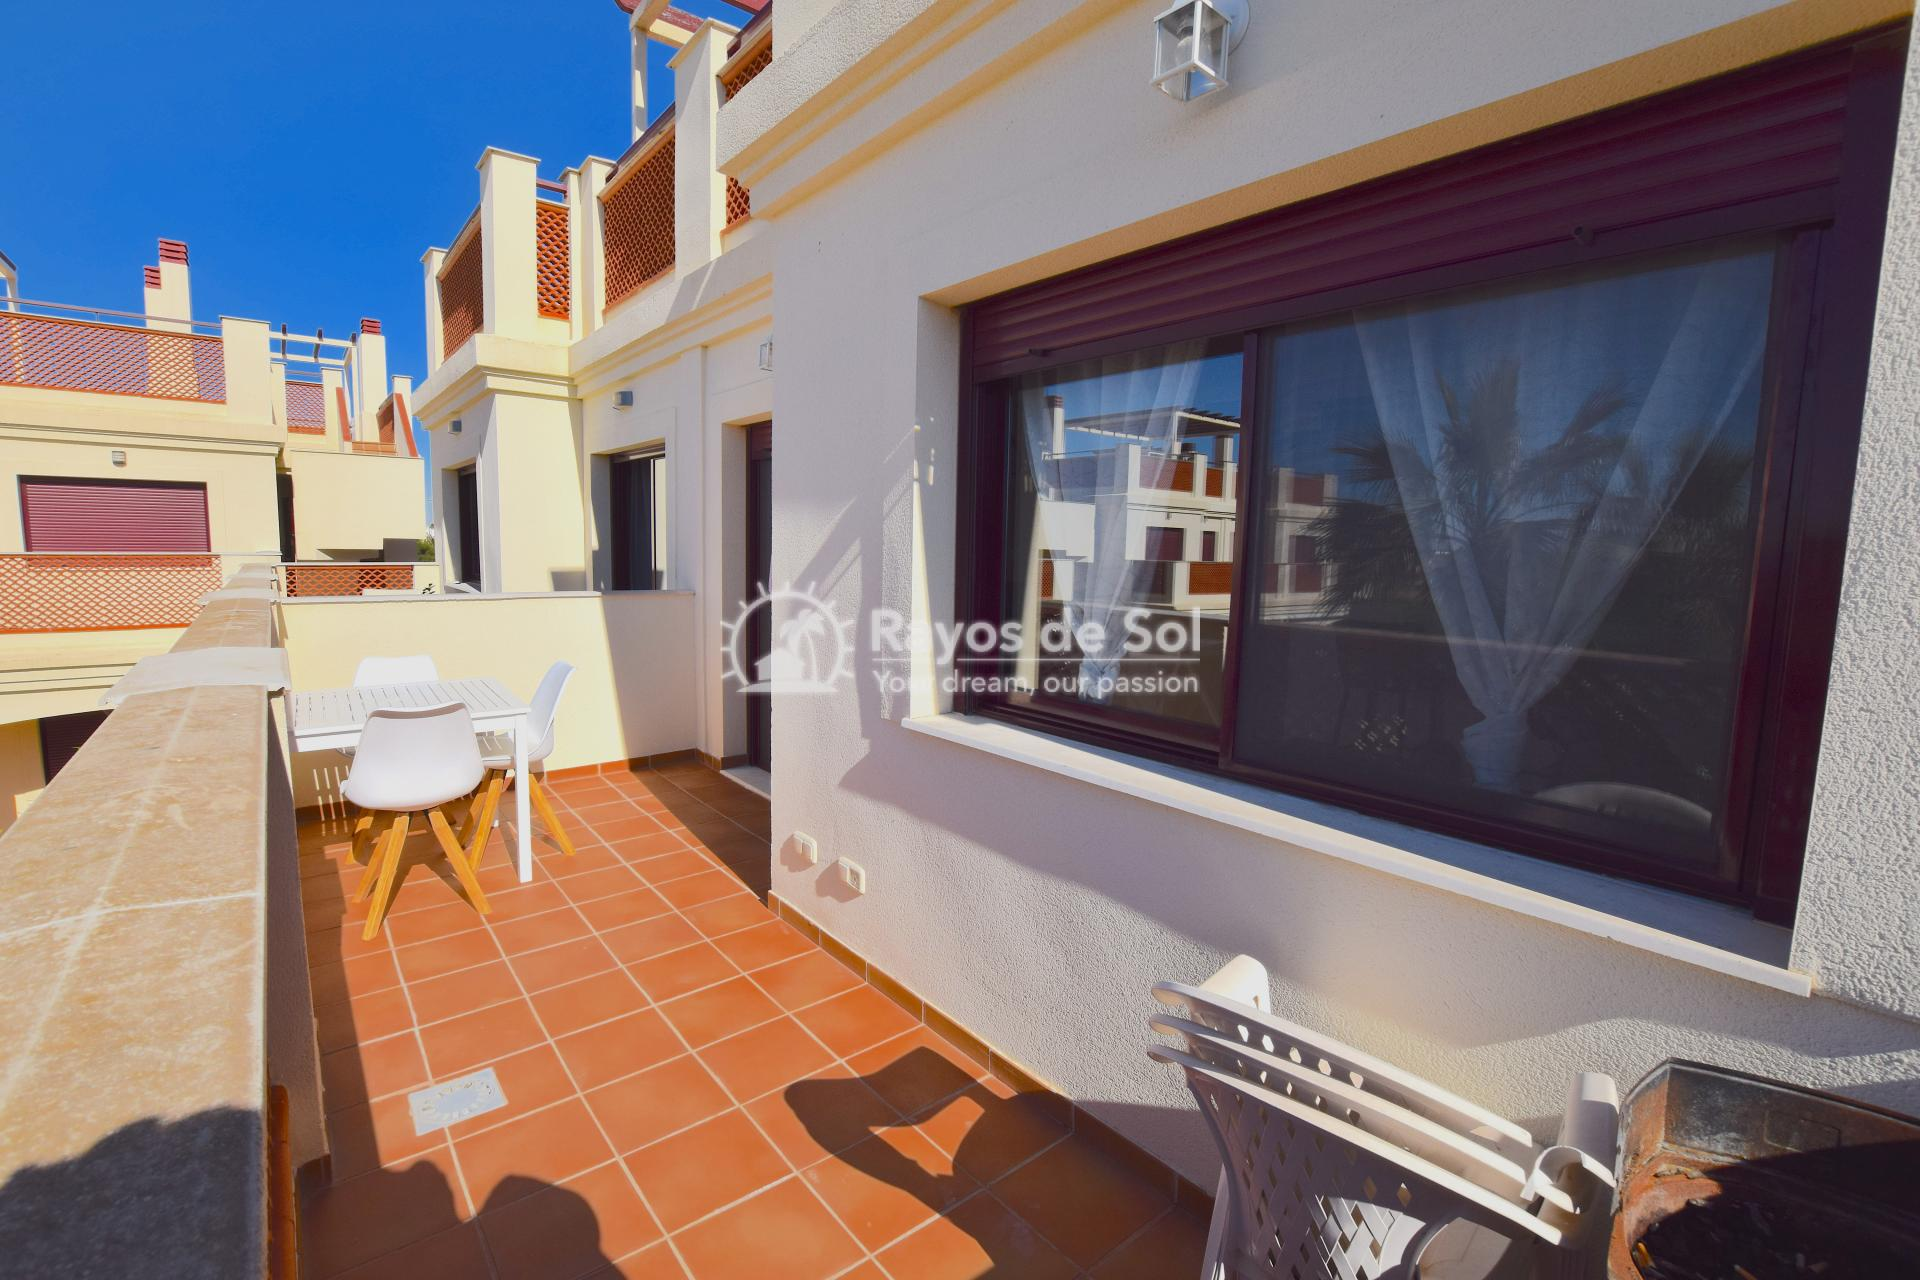 Penthouse with stunning views  in Los Alcazares, Costa Cálida (LARE0003) - 11